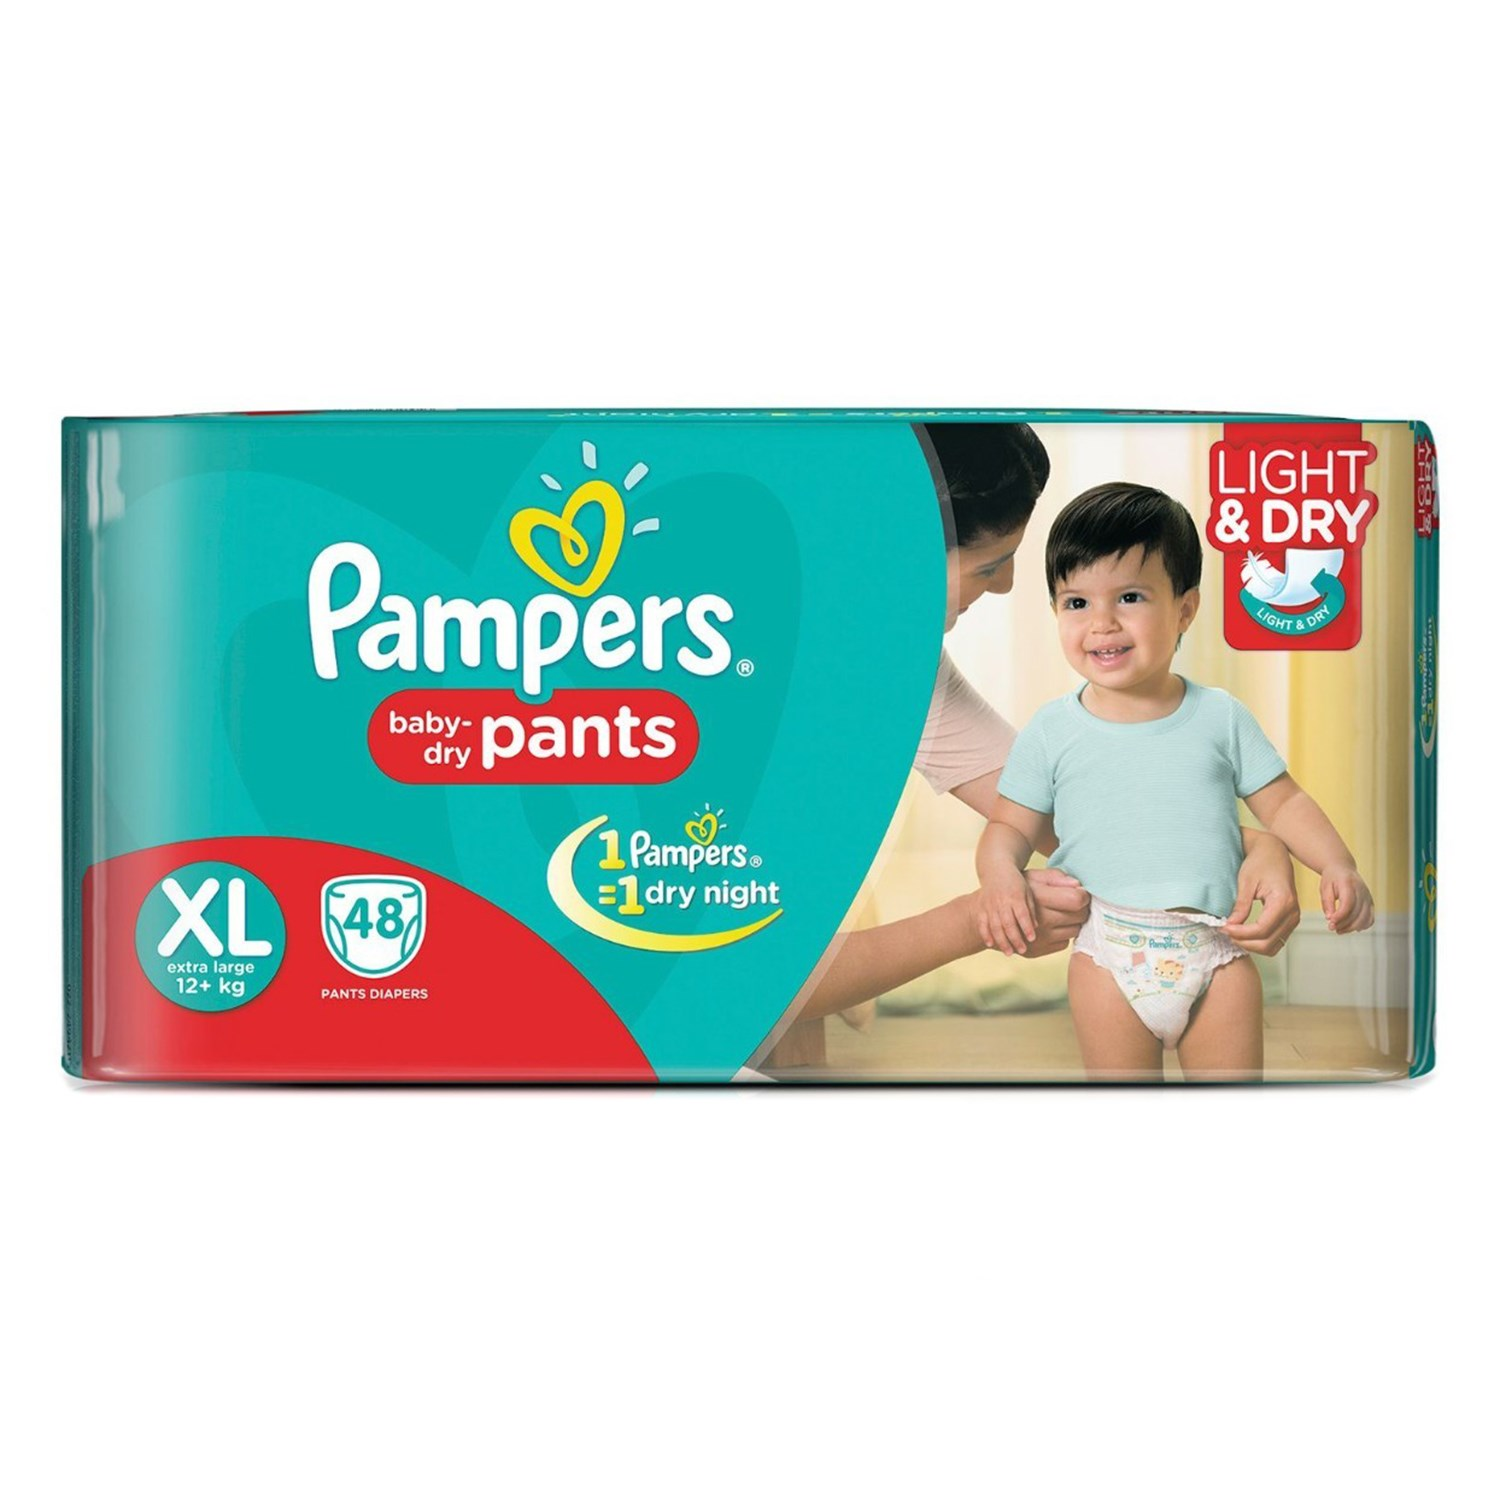 Pampers Pant Style Diapers XL - 48 Nos